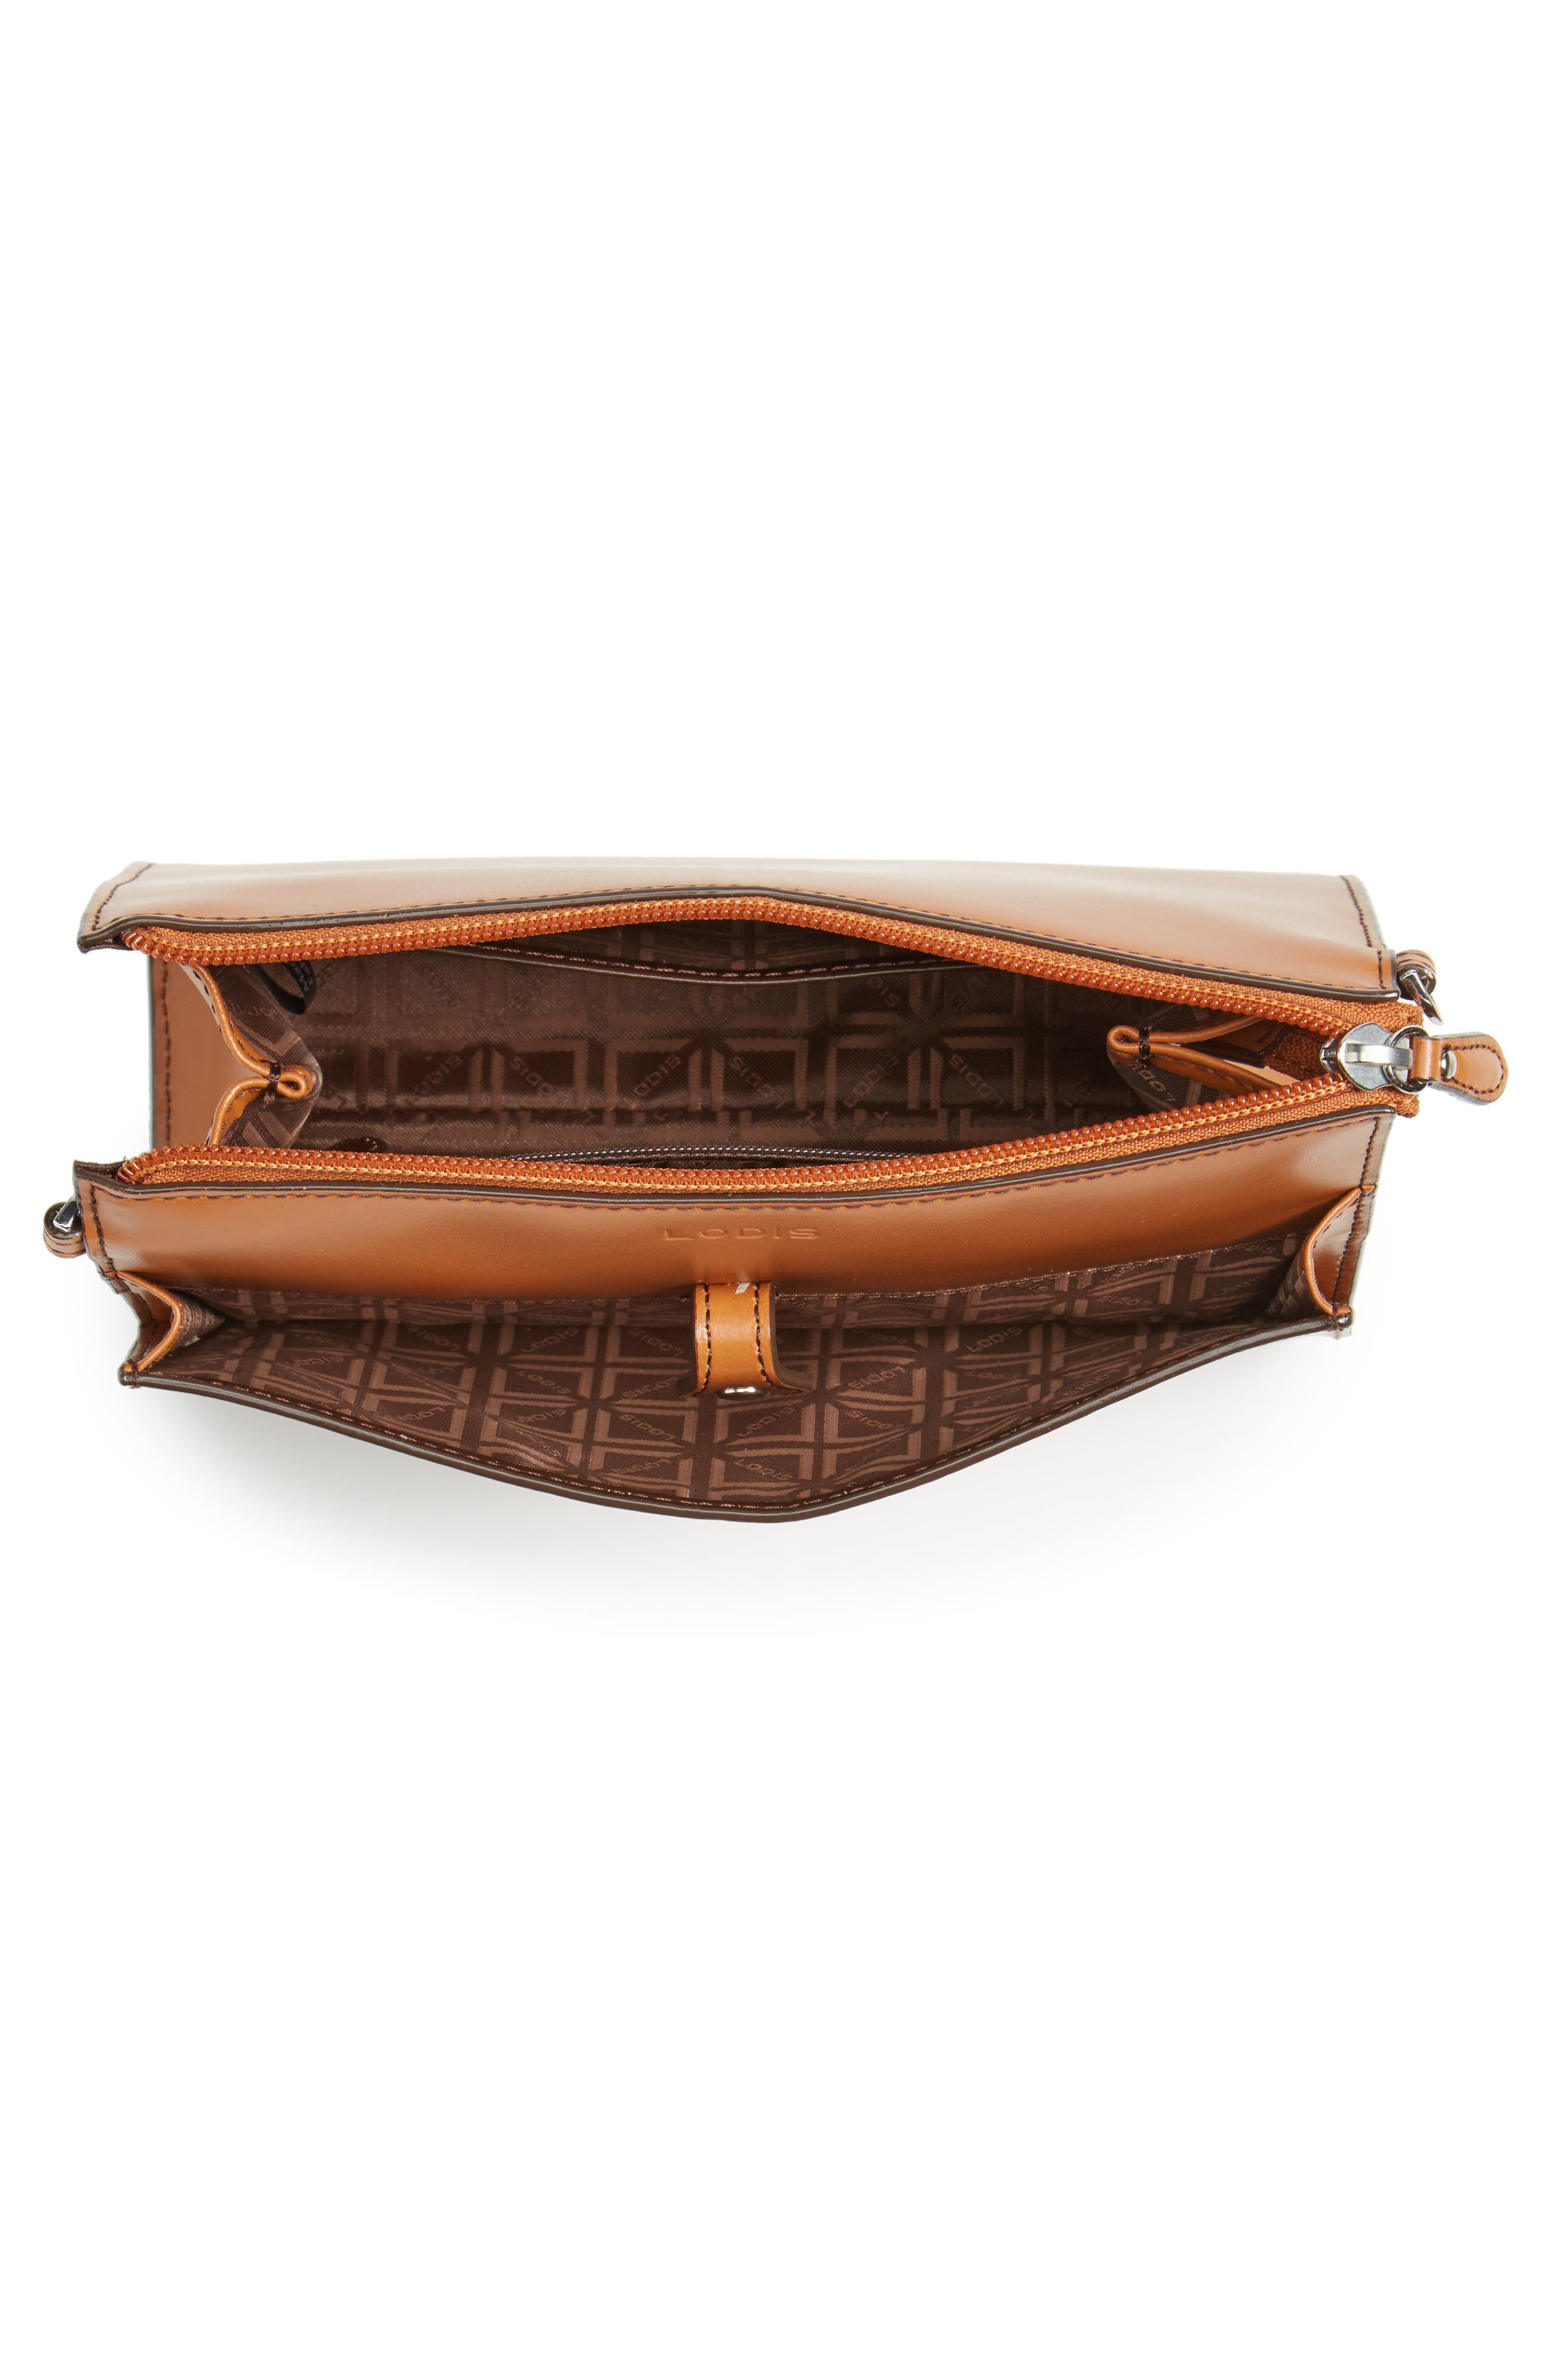 Audrey Under Lock & Key Vicky Convertible Leather Crossbody Bag,                             Alternate thumbnail 4, color,                             TOFFEE